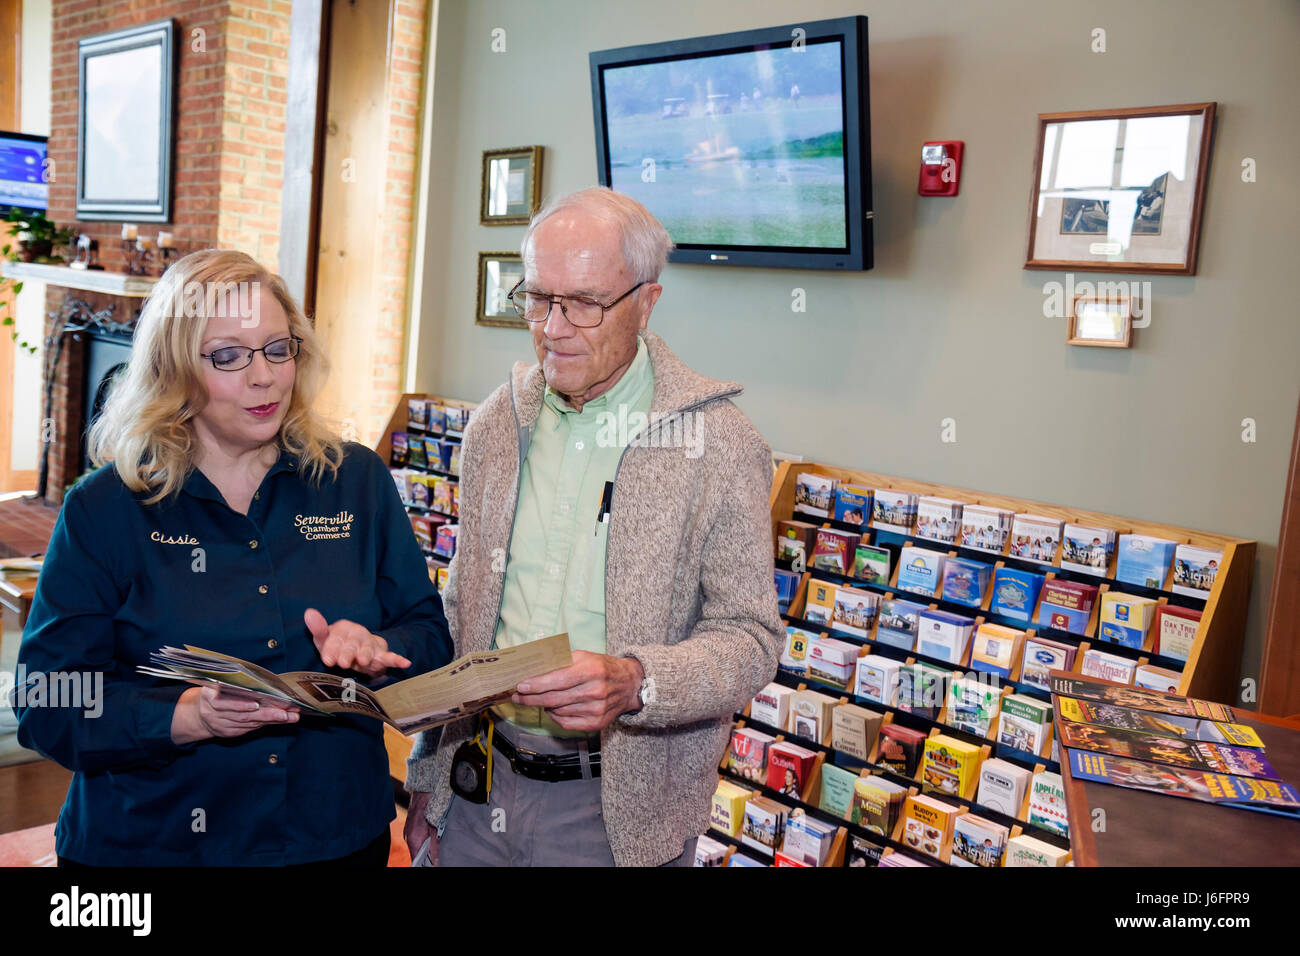 Tennessee Sevierville Chamber of Commerce Visitor Center woman man senior helper greet welcome information assist - Stock Image